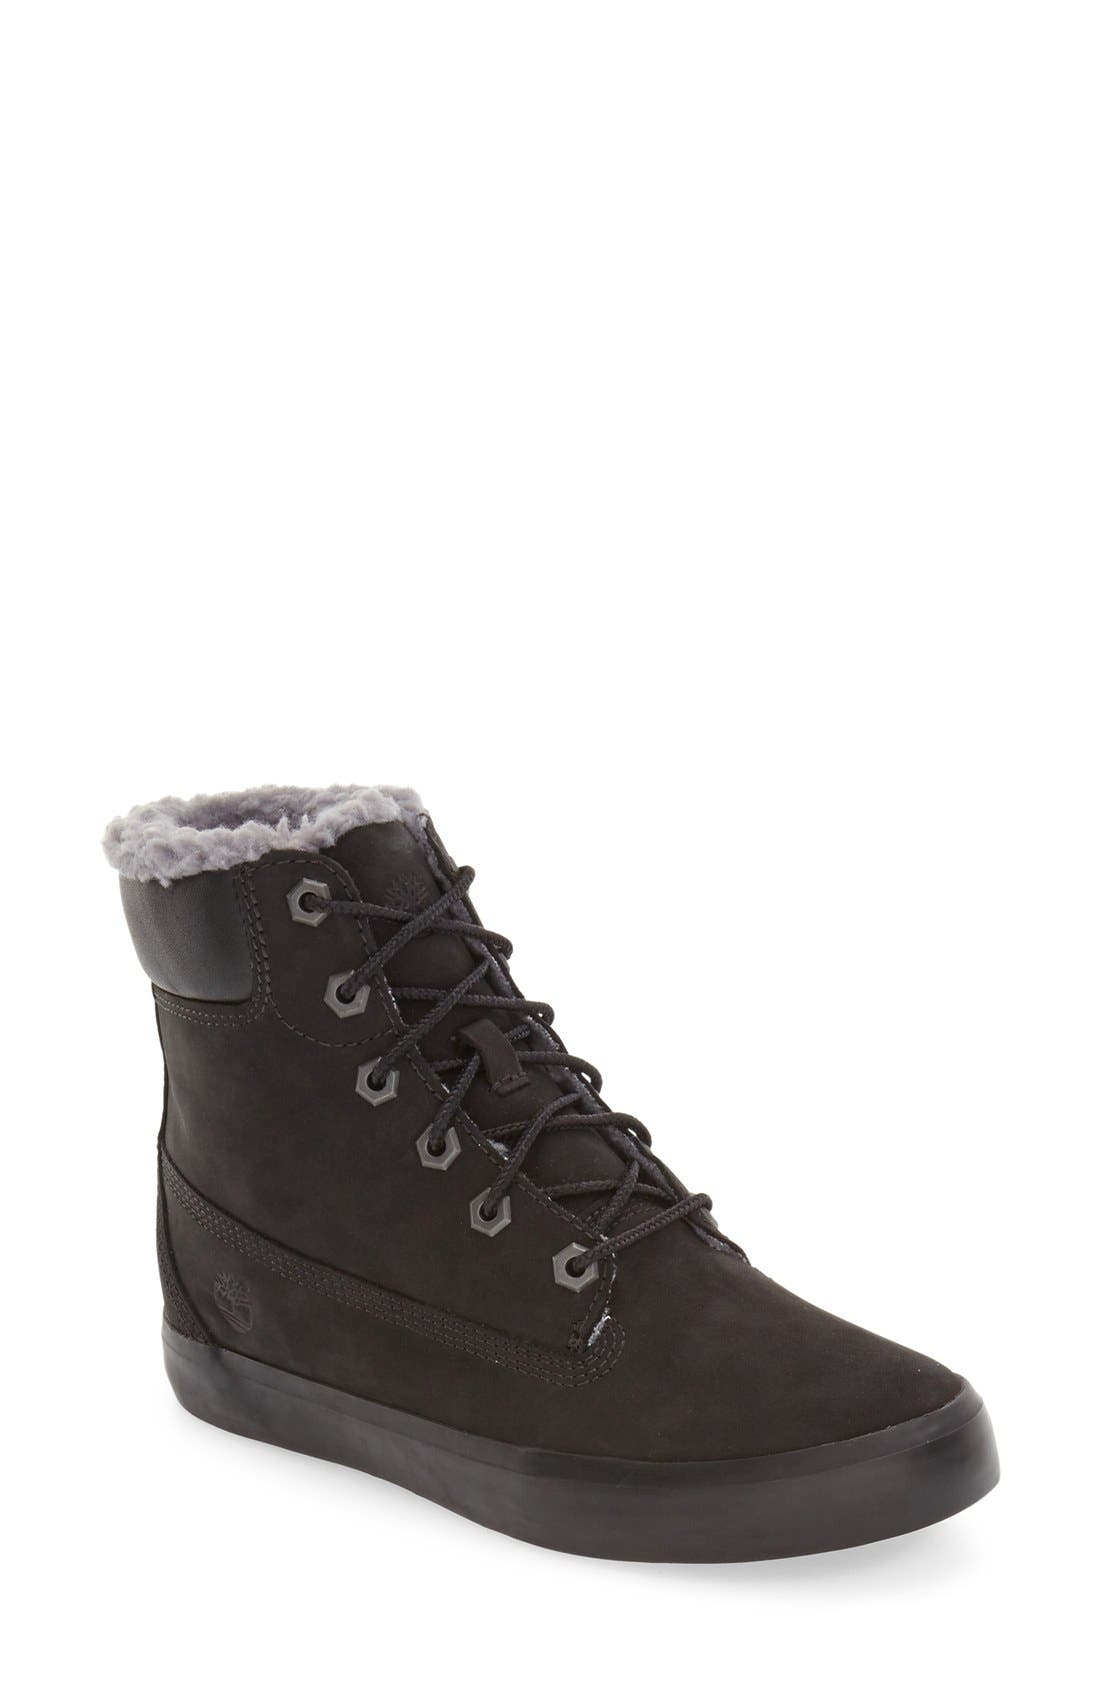 Alternate Image 1 Selected - Timberland Flannery Hidden Wedge Boot with Faux Fur Lining (Women)